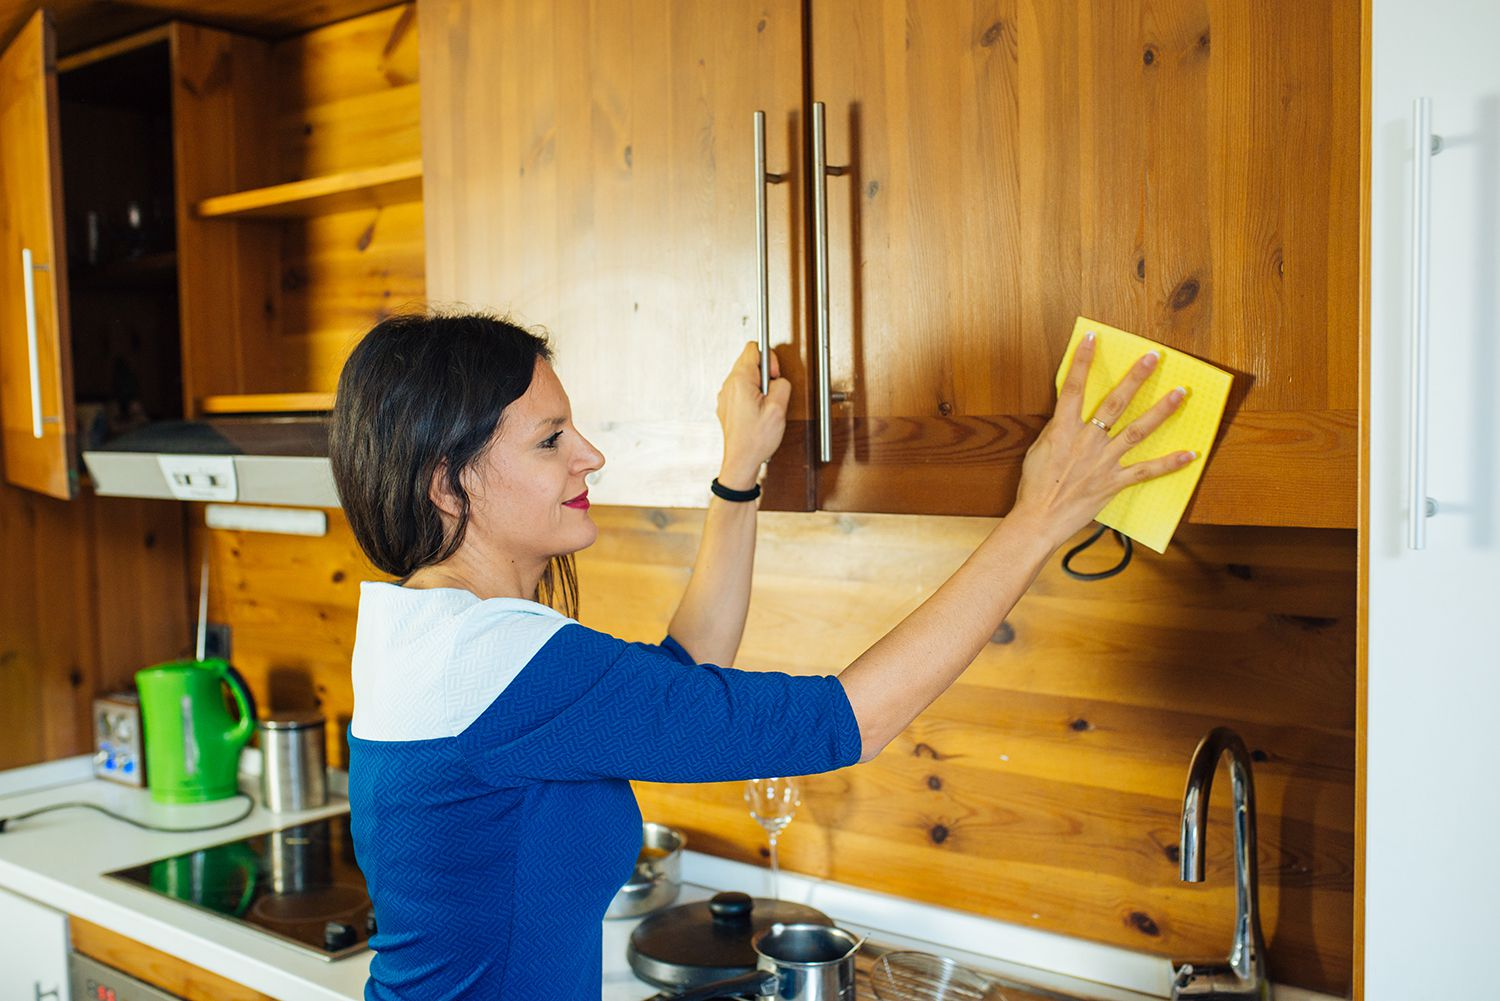 Tips For Cleaning Food Grease From Wood Cabinets